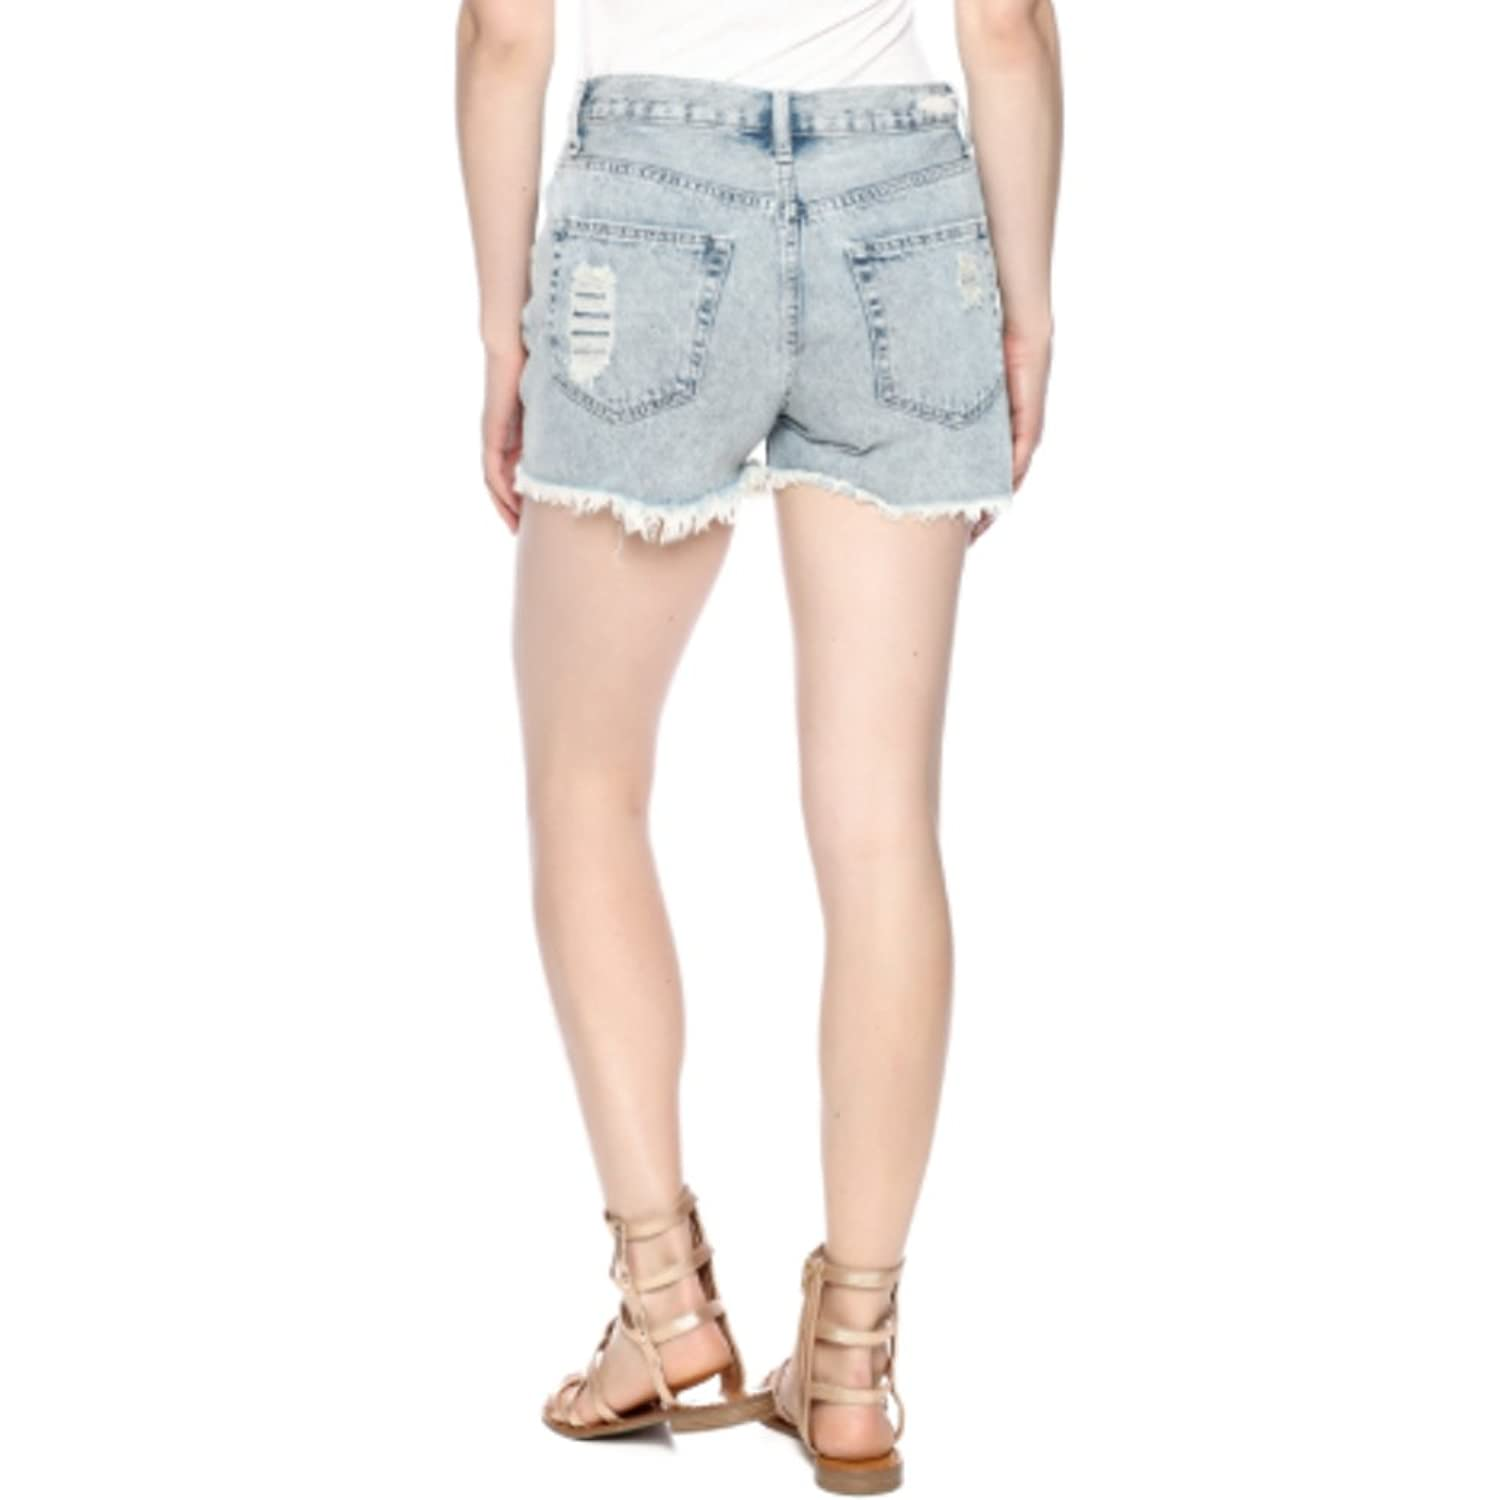 SNEAKPEEK BOYFRIEND SHORTS LIGHT WASH - JESSICA